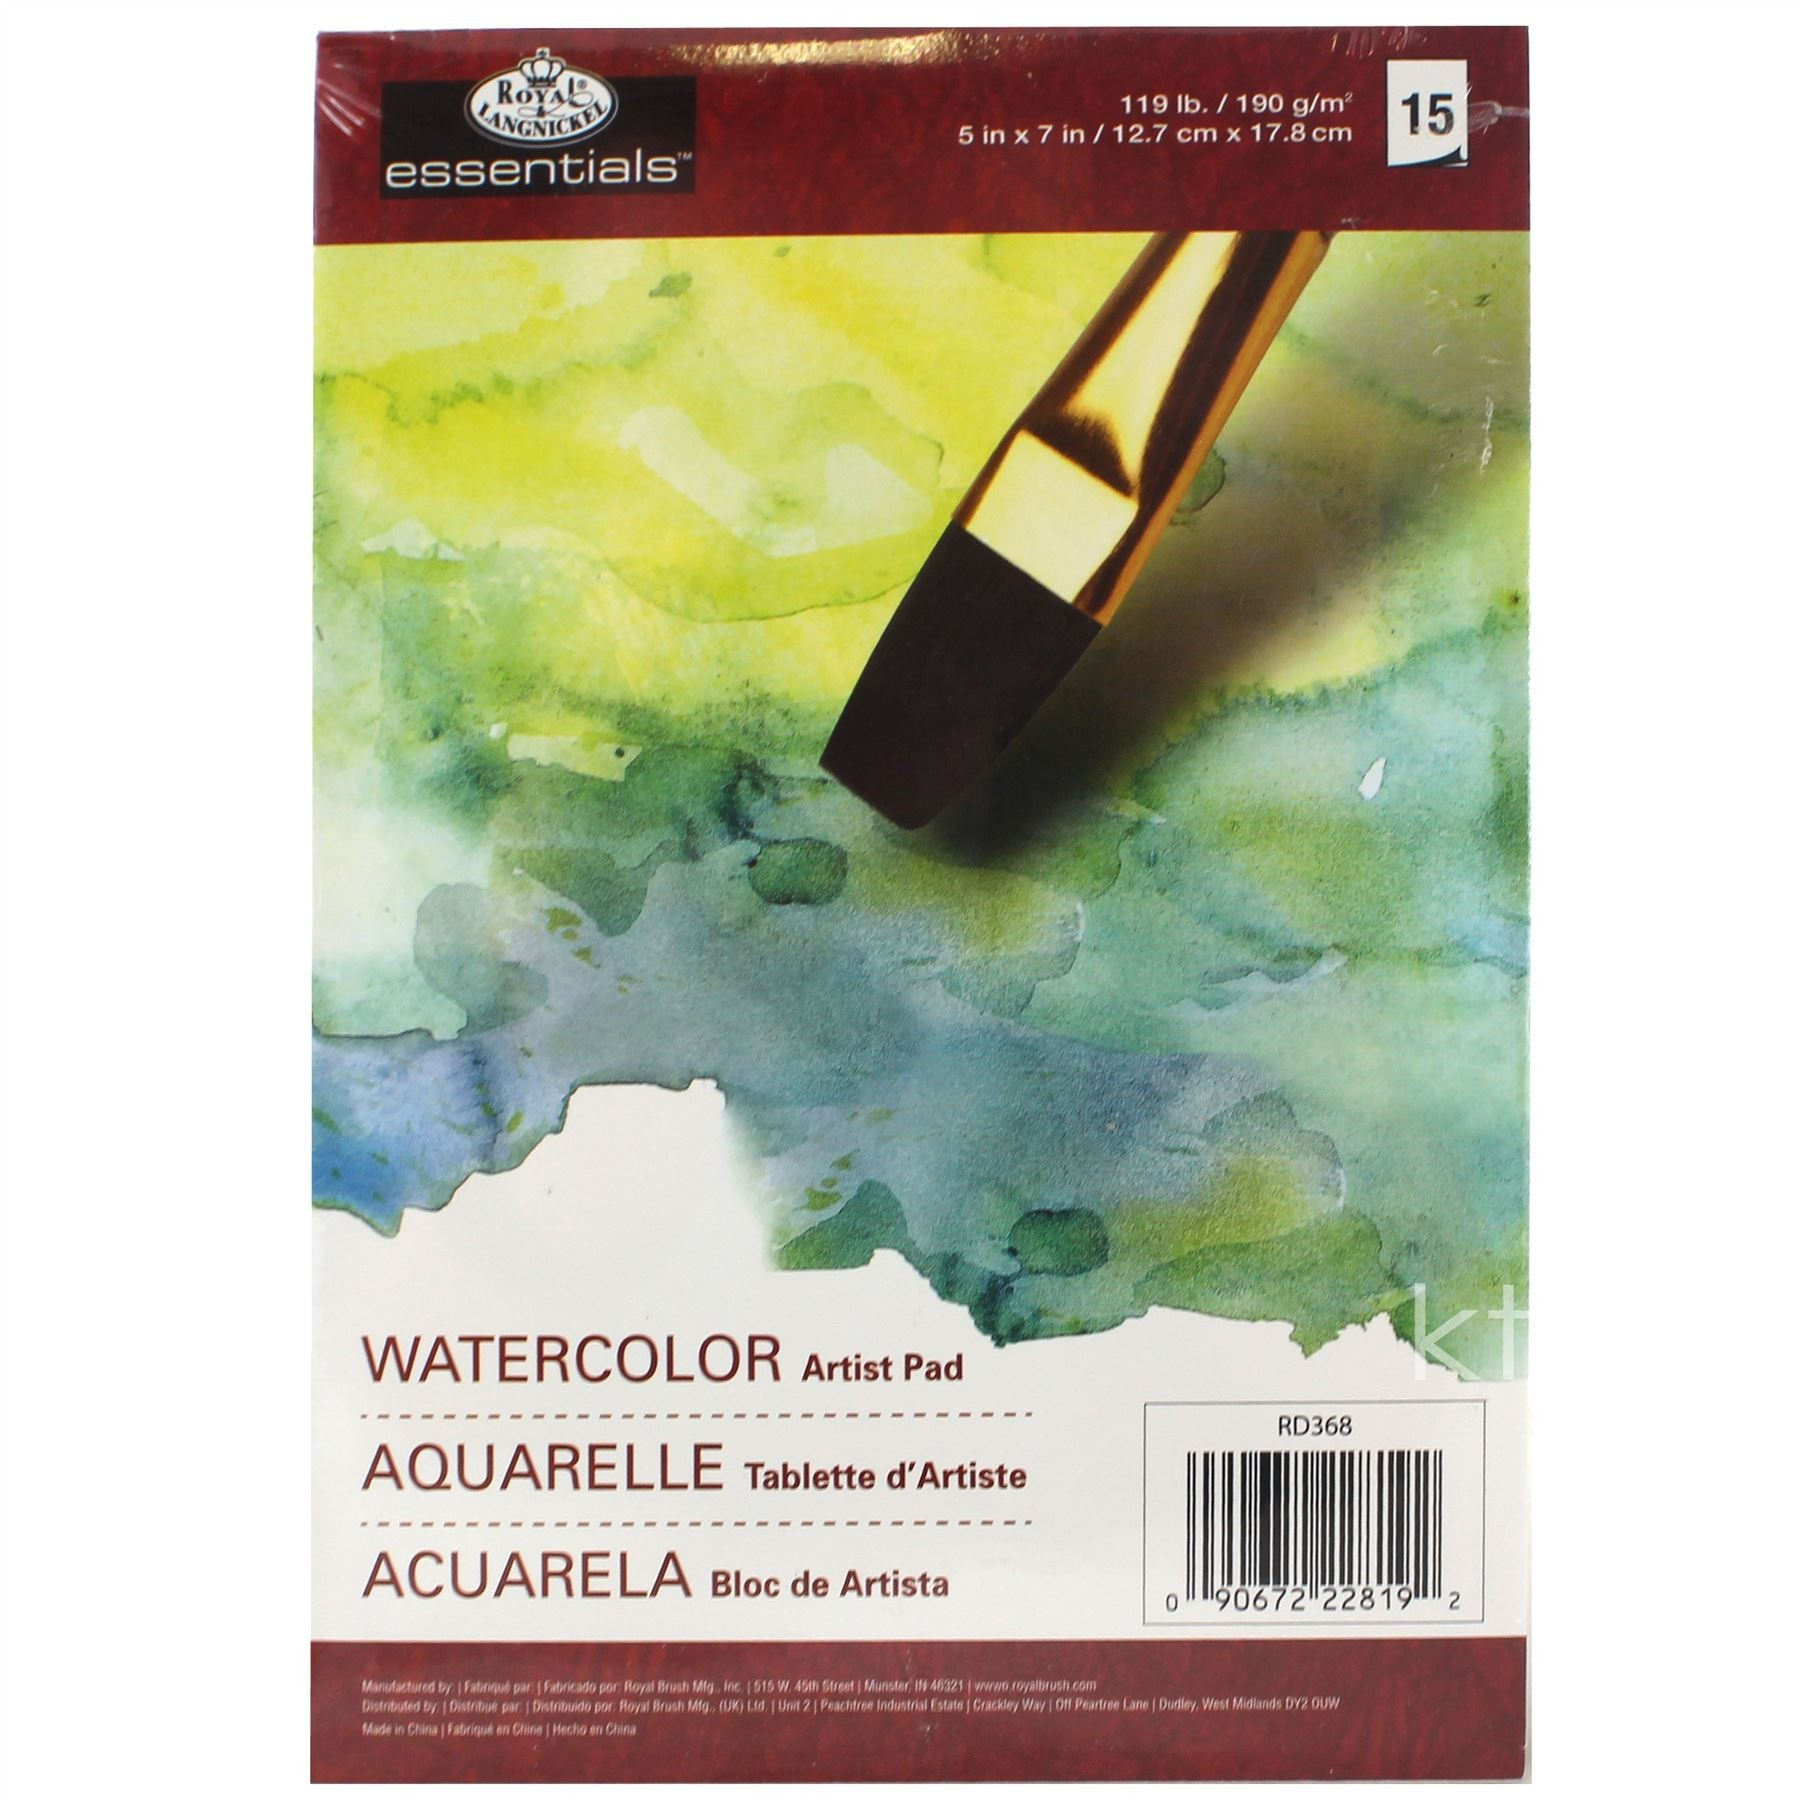 Royal and Langnickel Watercolour Artists Pad Small